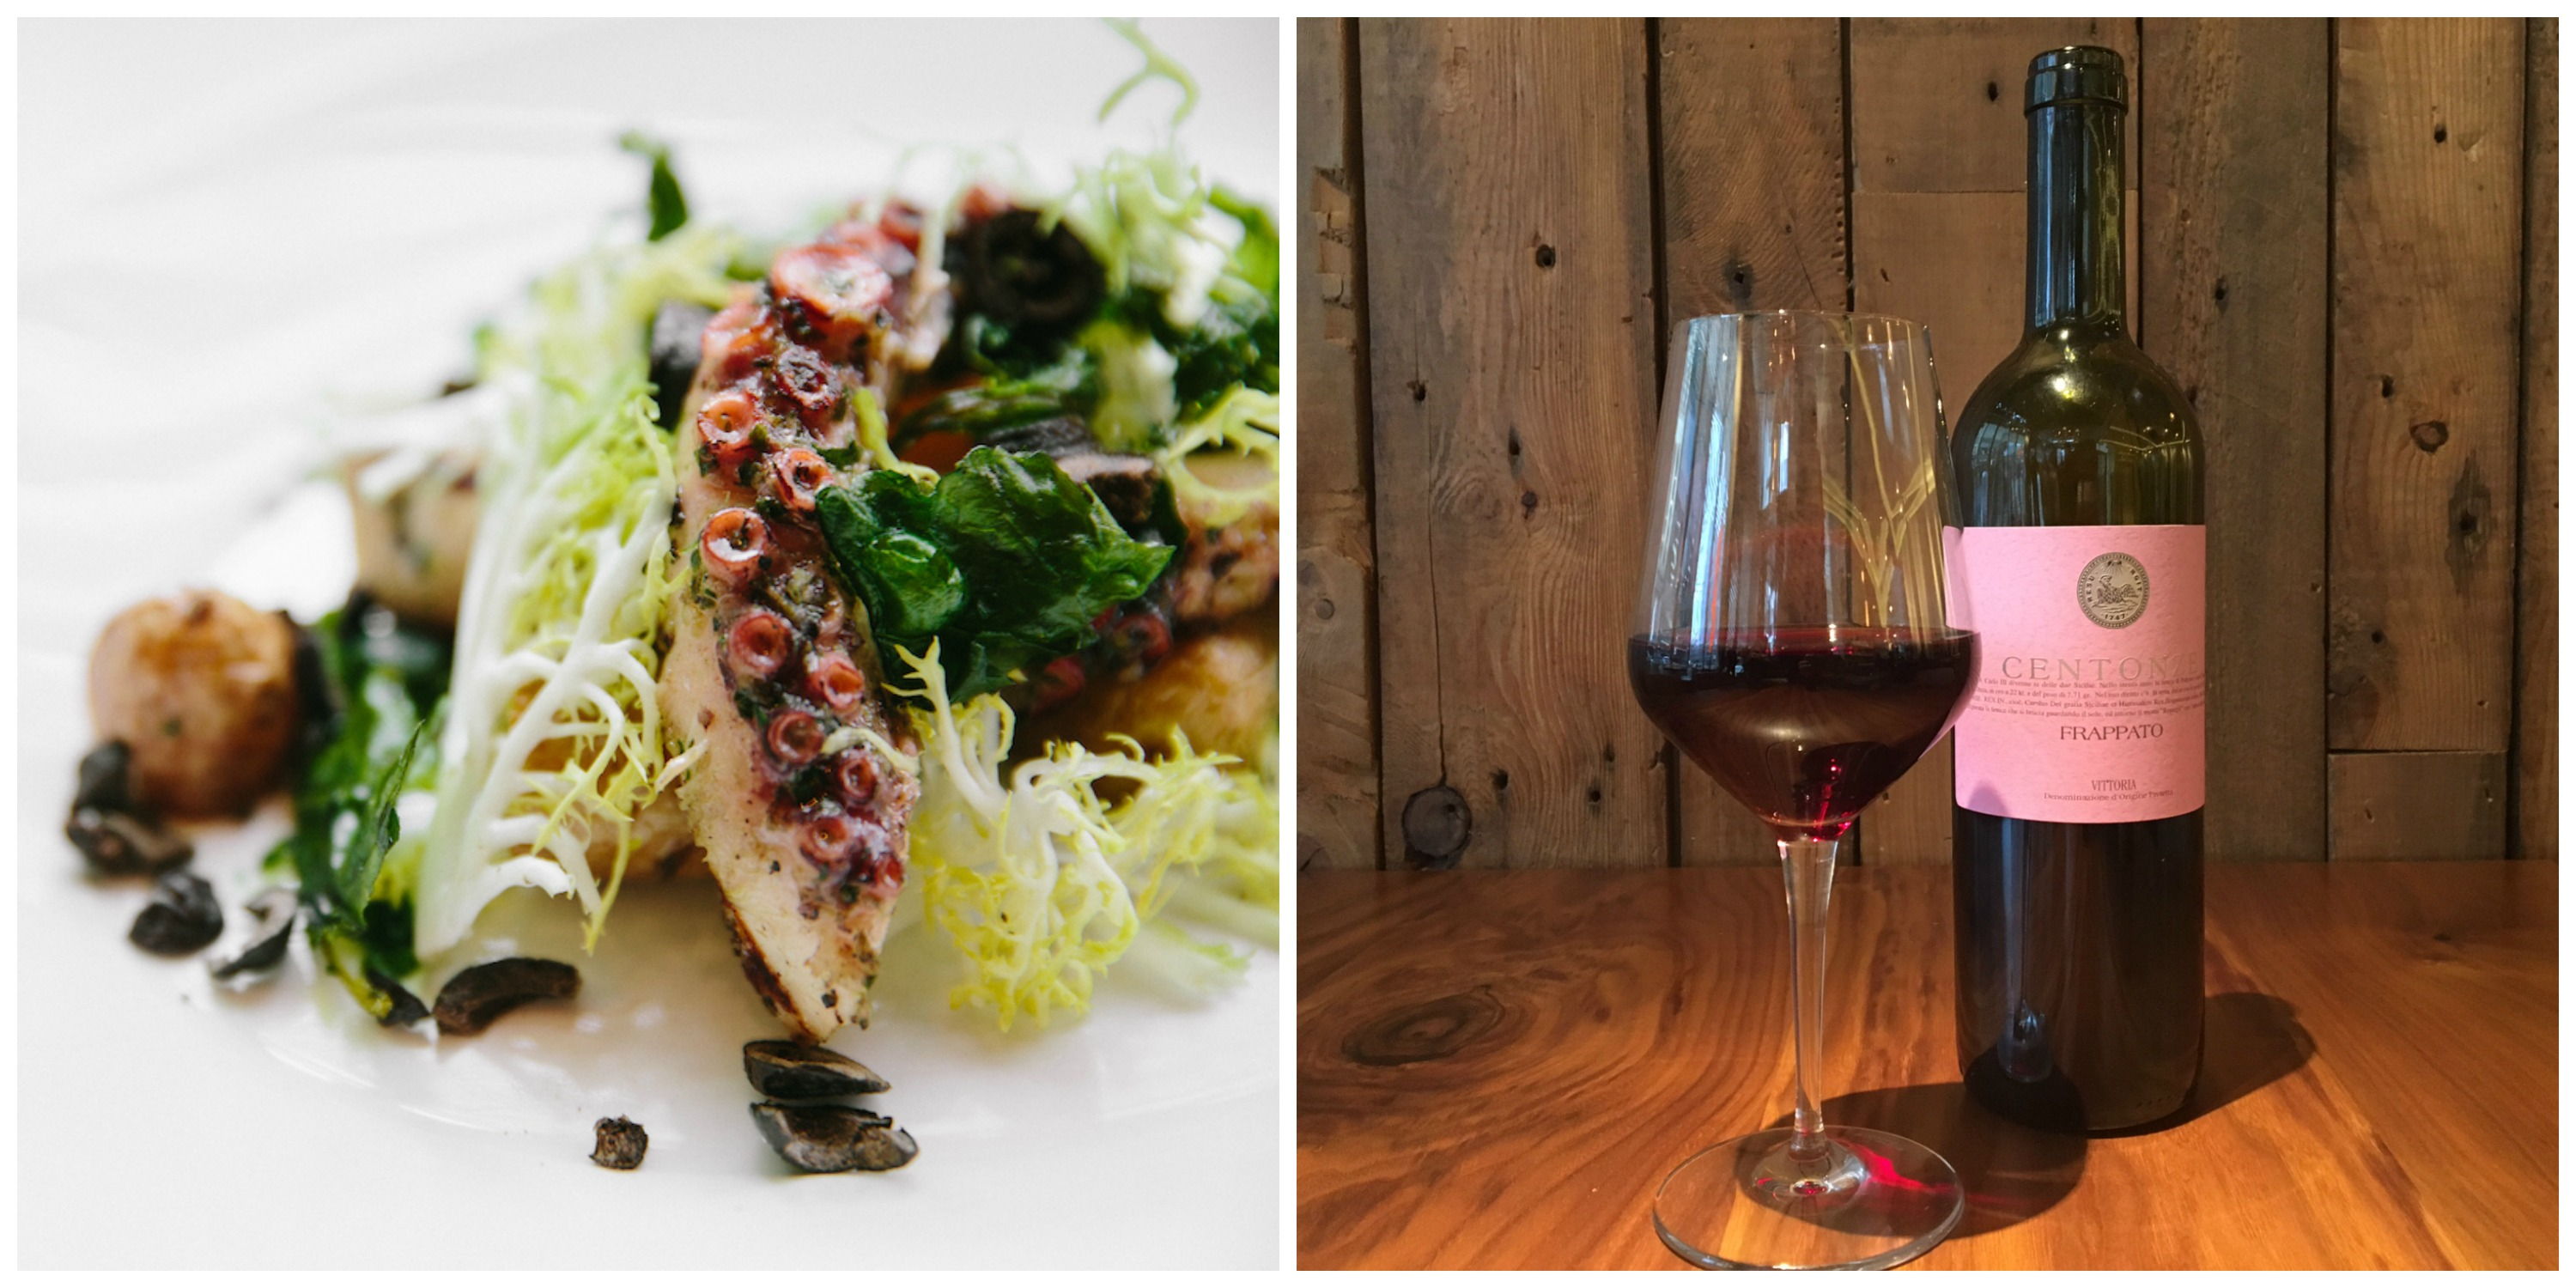 grilled octopus next to glass of red wine